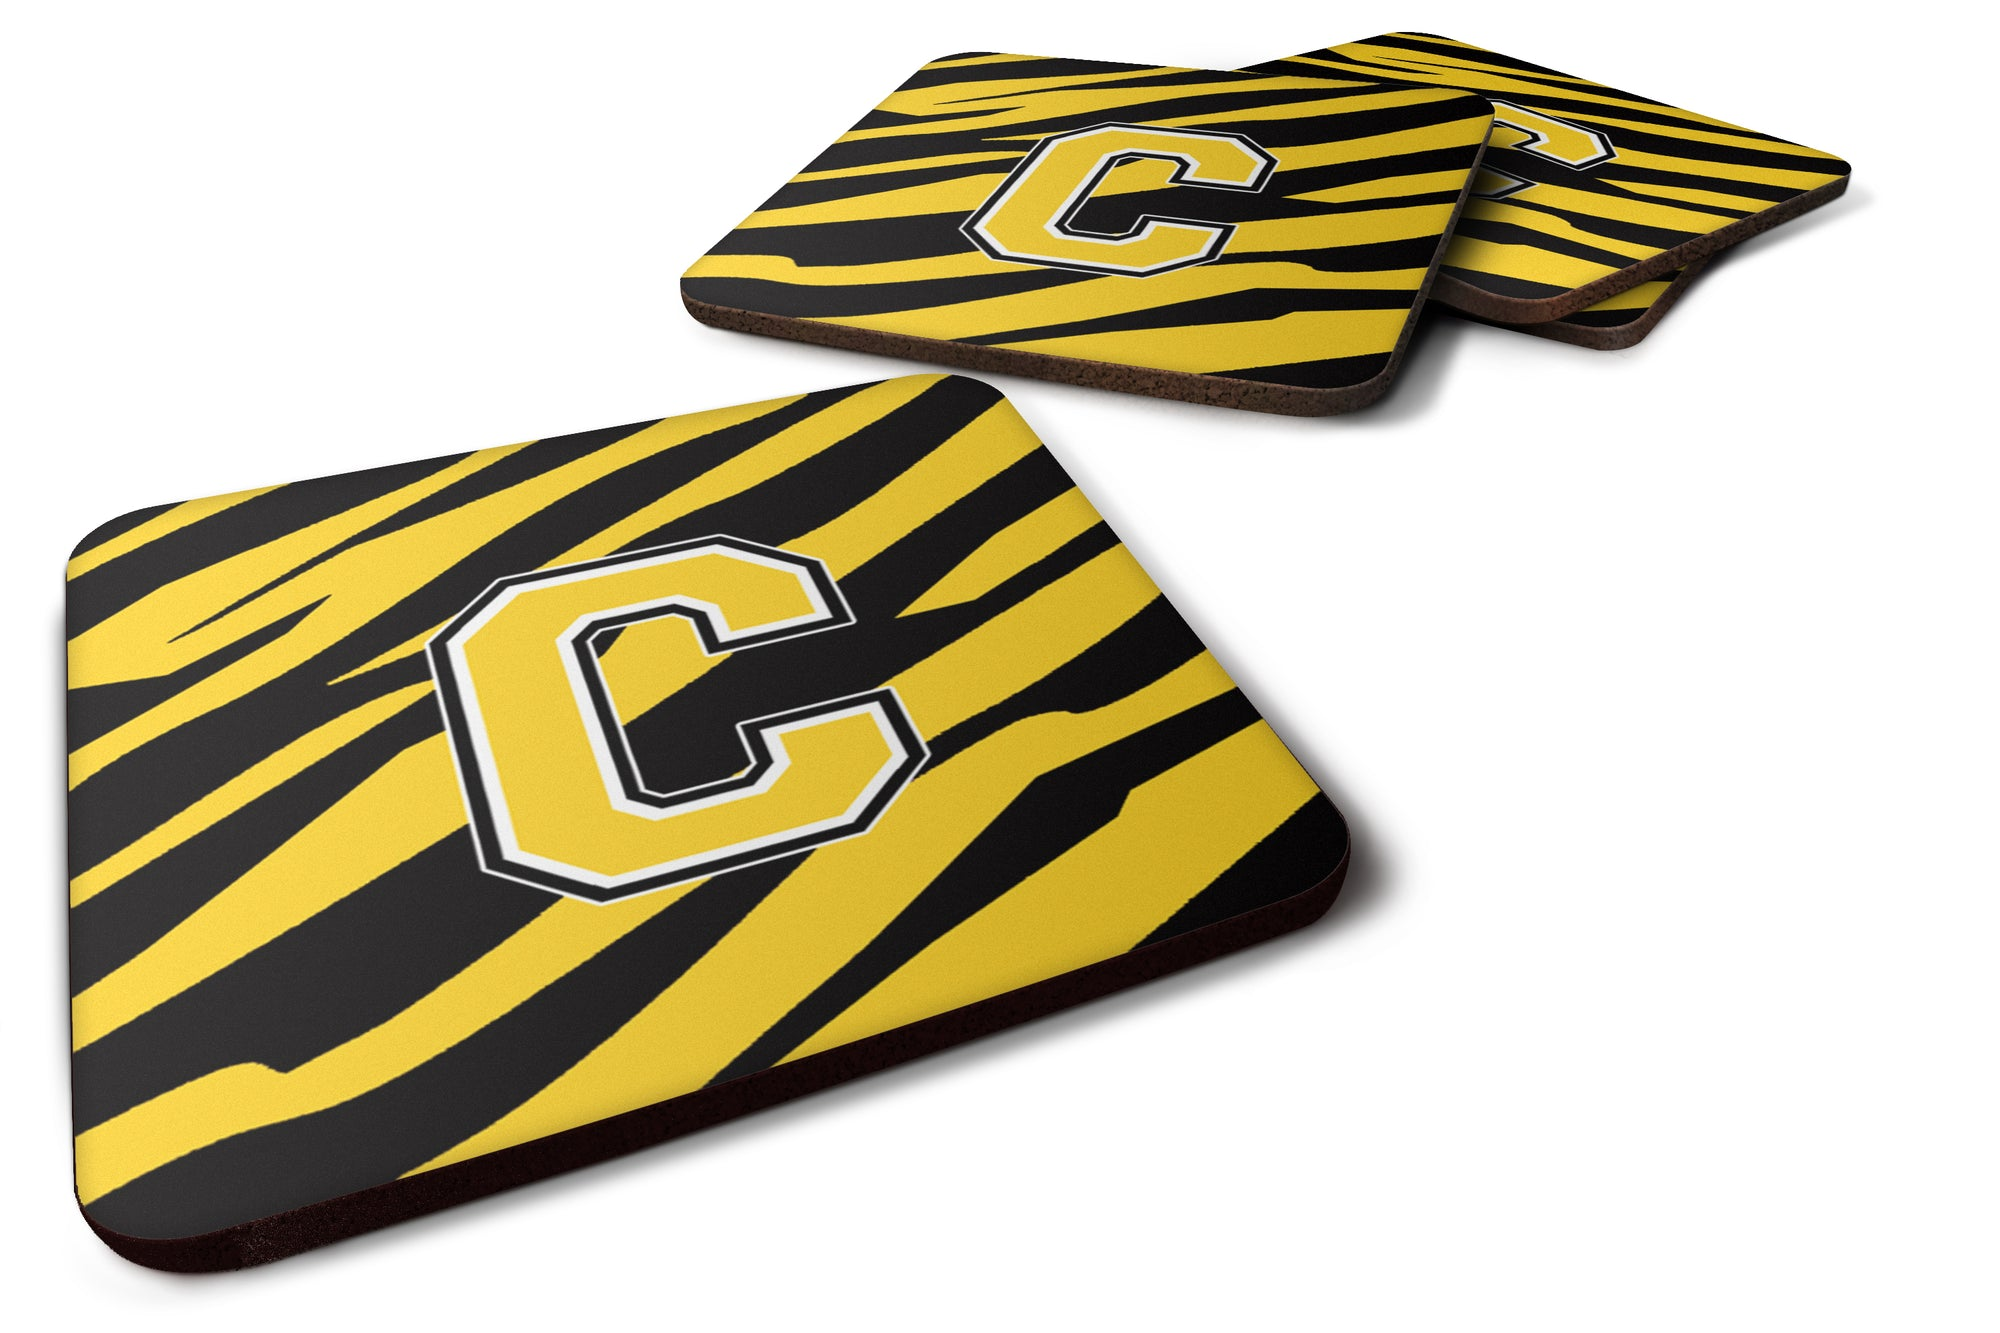 Set of 4 Monogram - Tiger Stripe - Black Gold Foam Coasters Initial Letter C by Caroline's Treasures